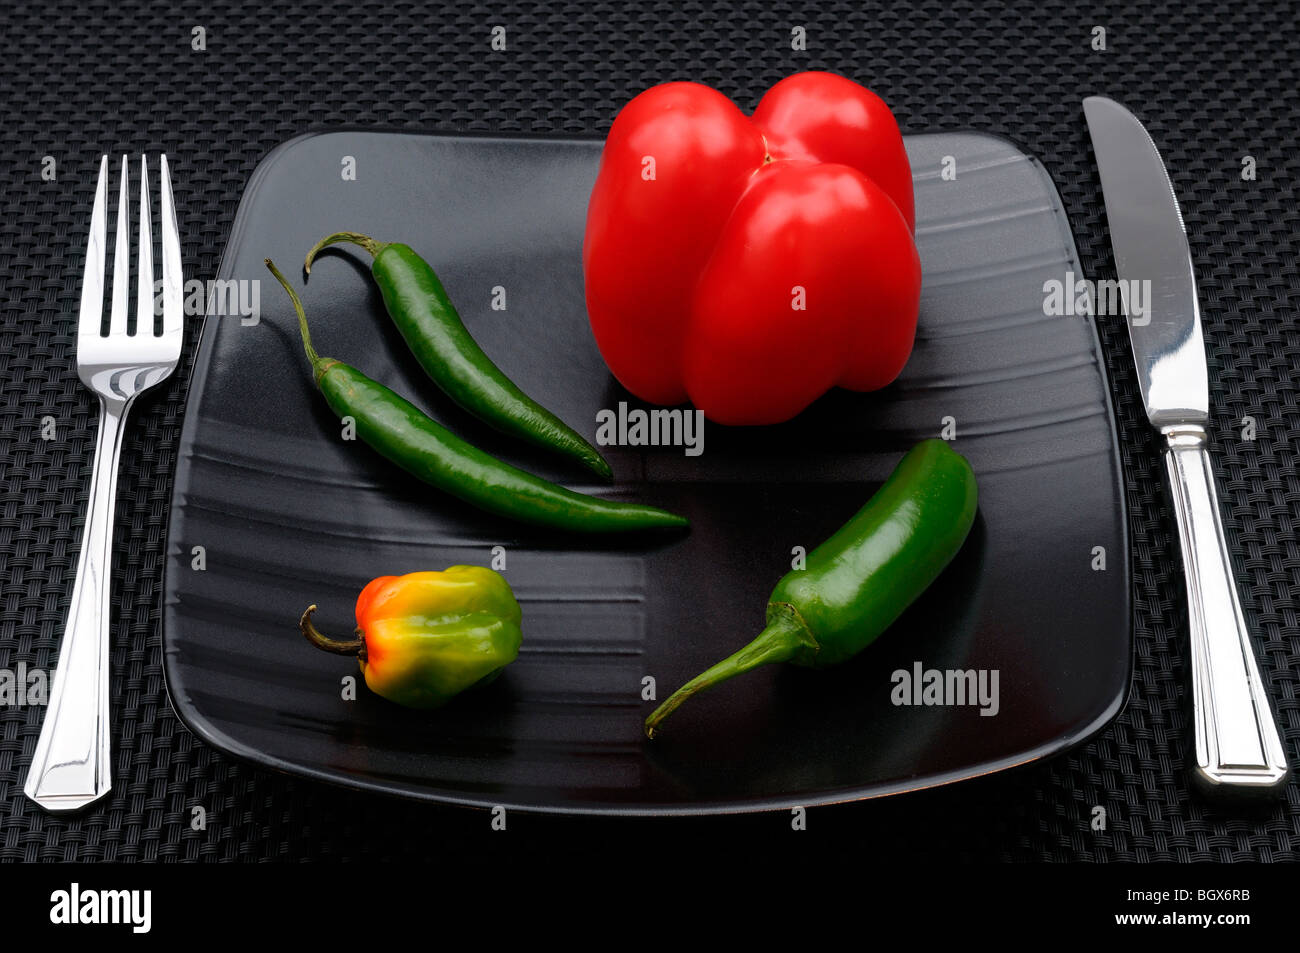 Table setting with cutlery and black plate with sweet bell and hot chili peppers - Stock Image